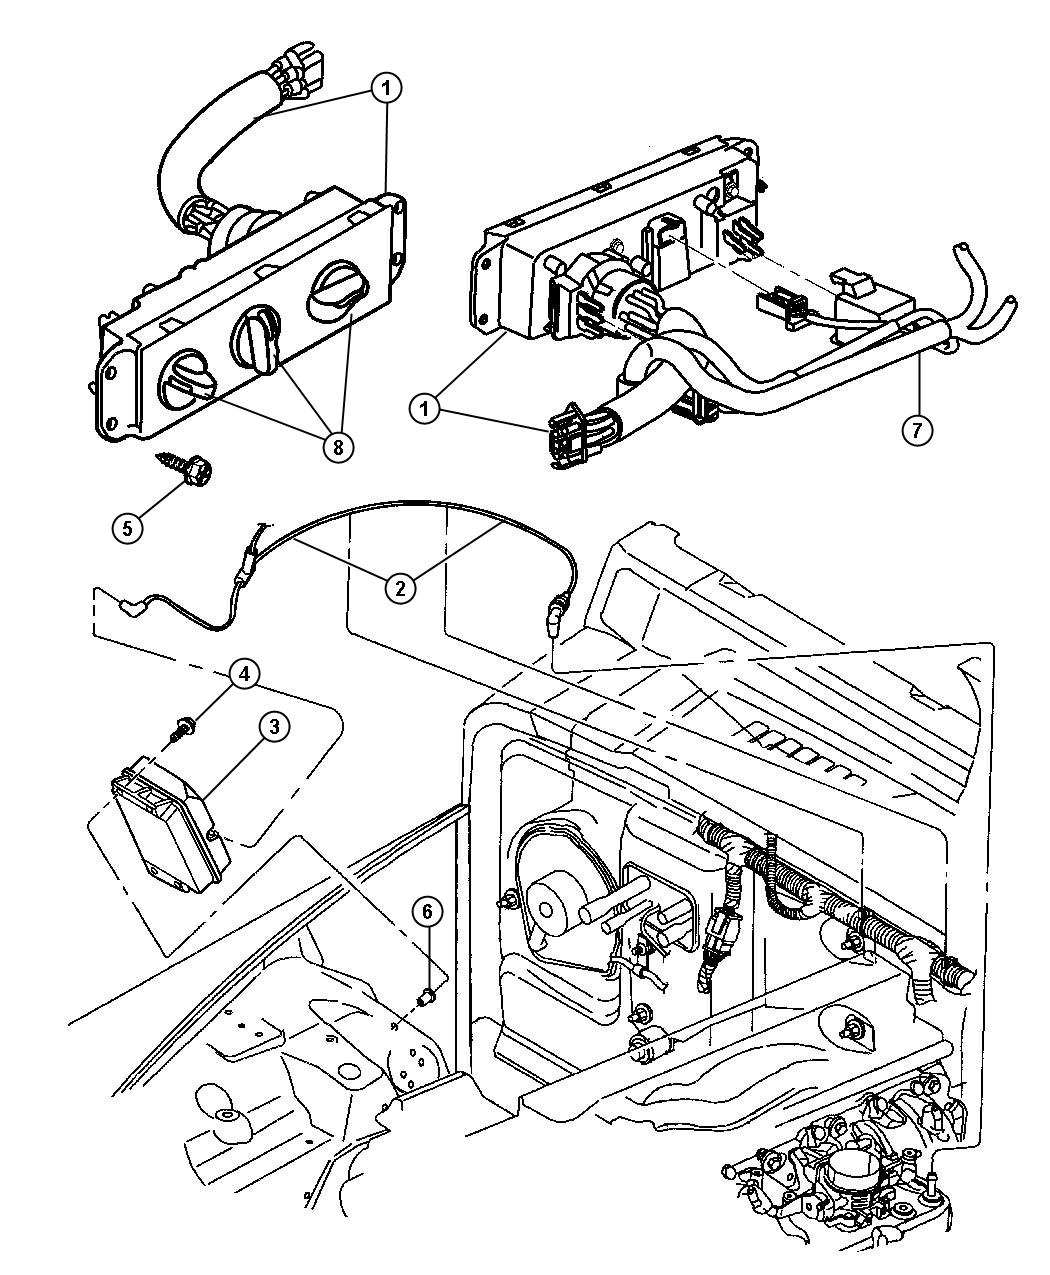 Jeep Wrangler Air Conditioning Diagram